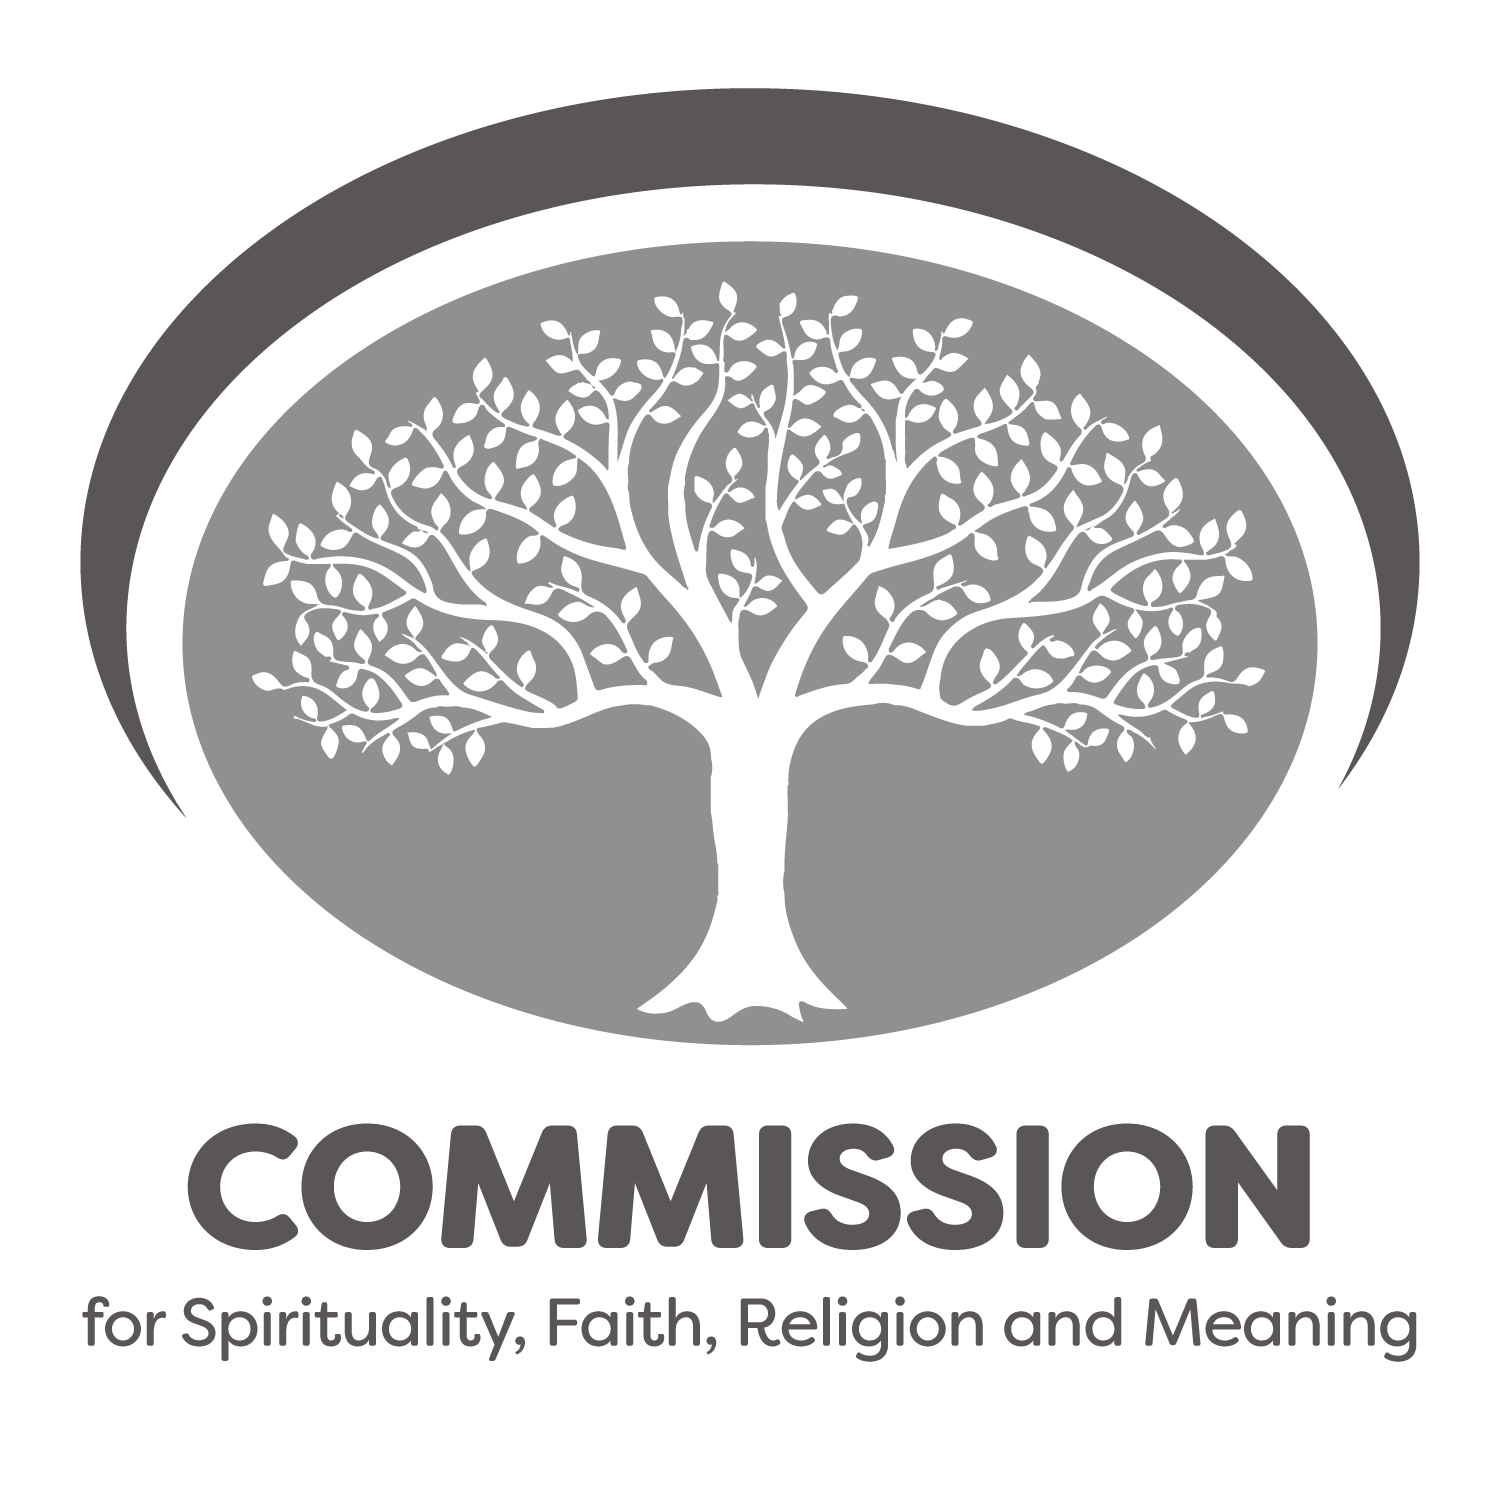 Commission for Spirtuality Faith, Religion and Meaning logo